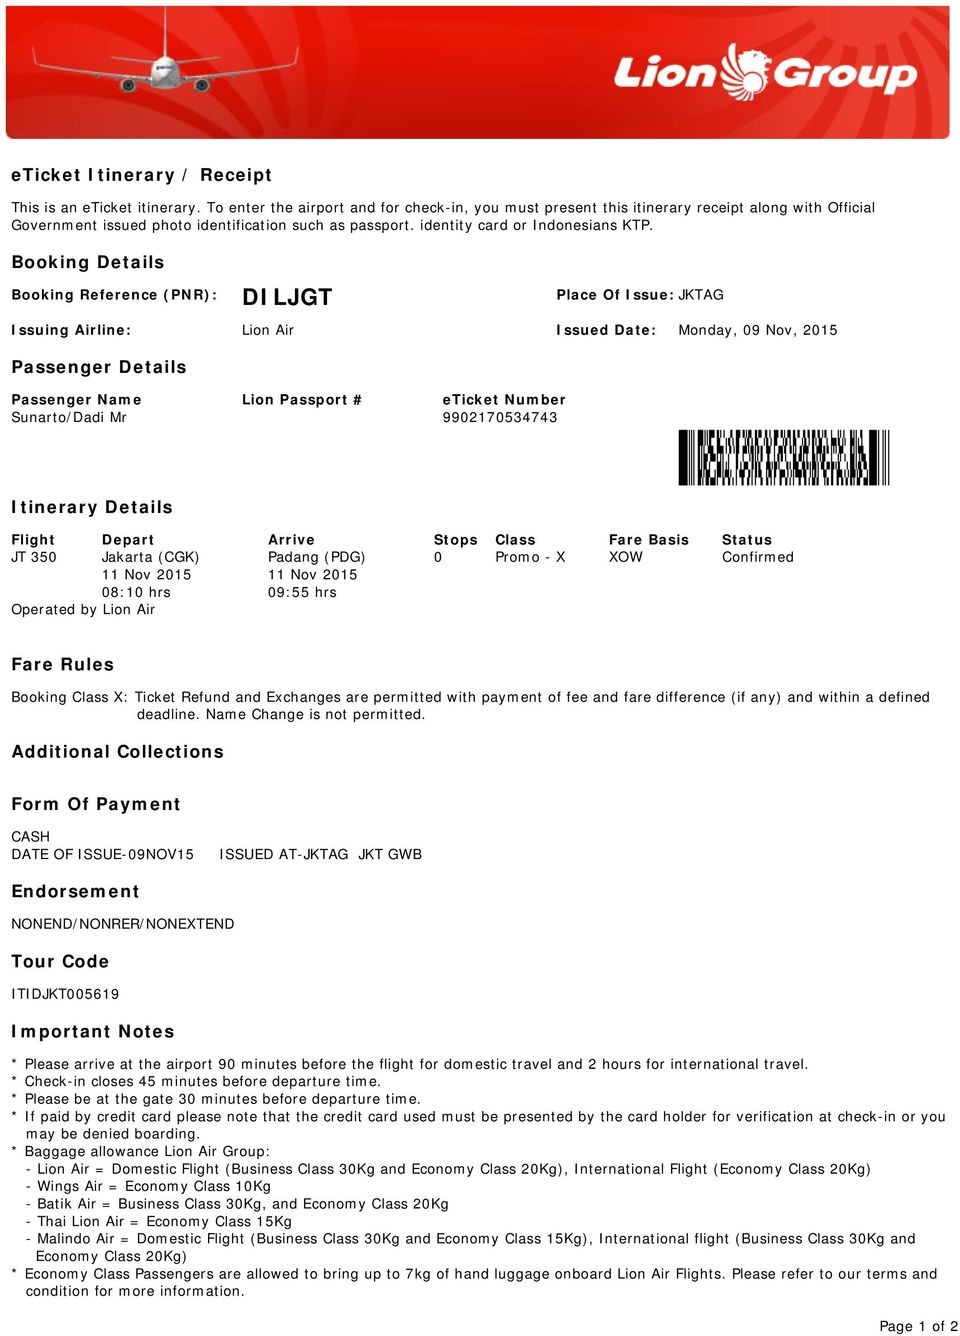 Booking Details Booking Reference (PNR): DILJGT Place Of Issue: JKTAG Issuing Airline: Lion Air Issued Date: Monday, 09 Nov, 2015 Passenger Details Passenger Name Lion Passport # eticket Number